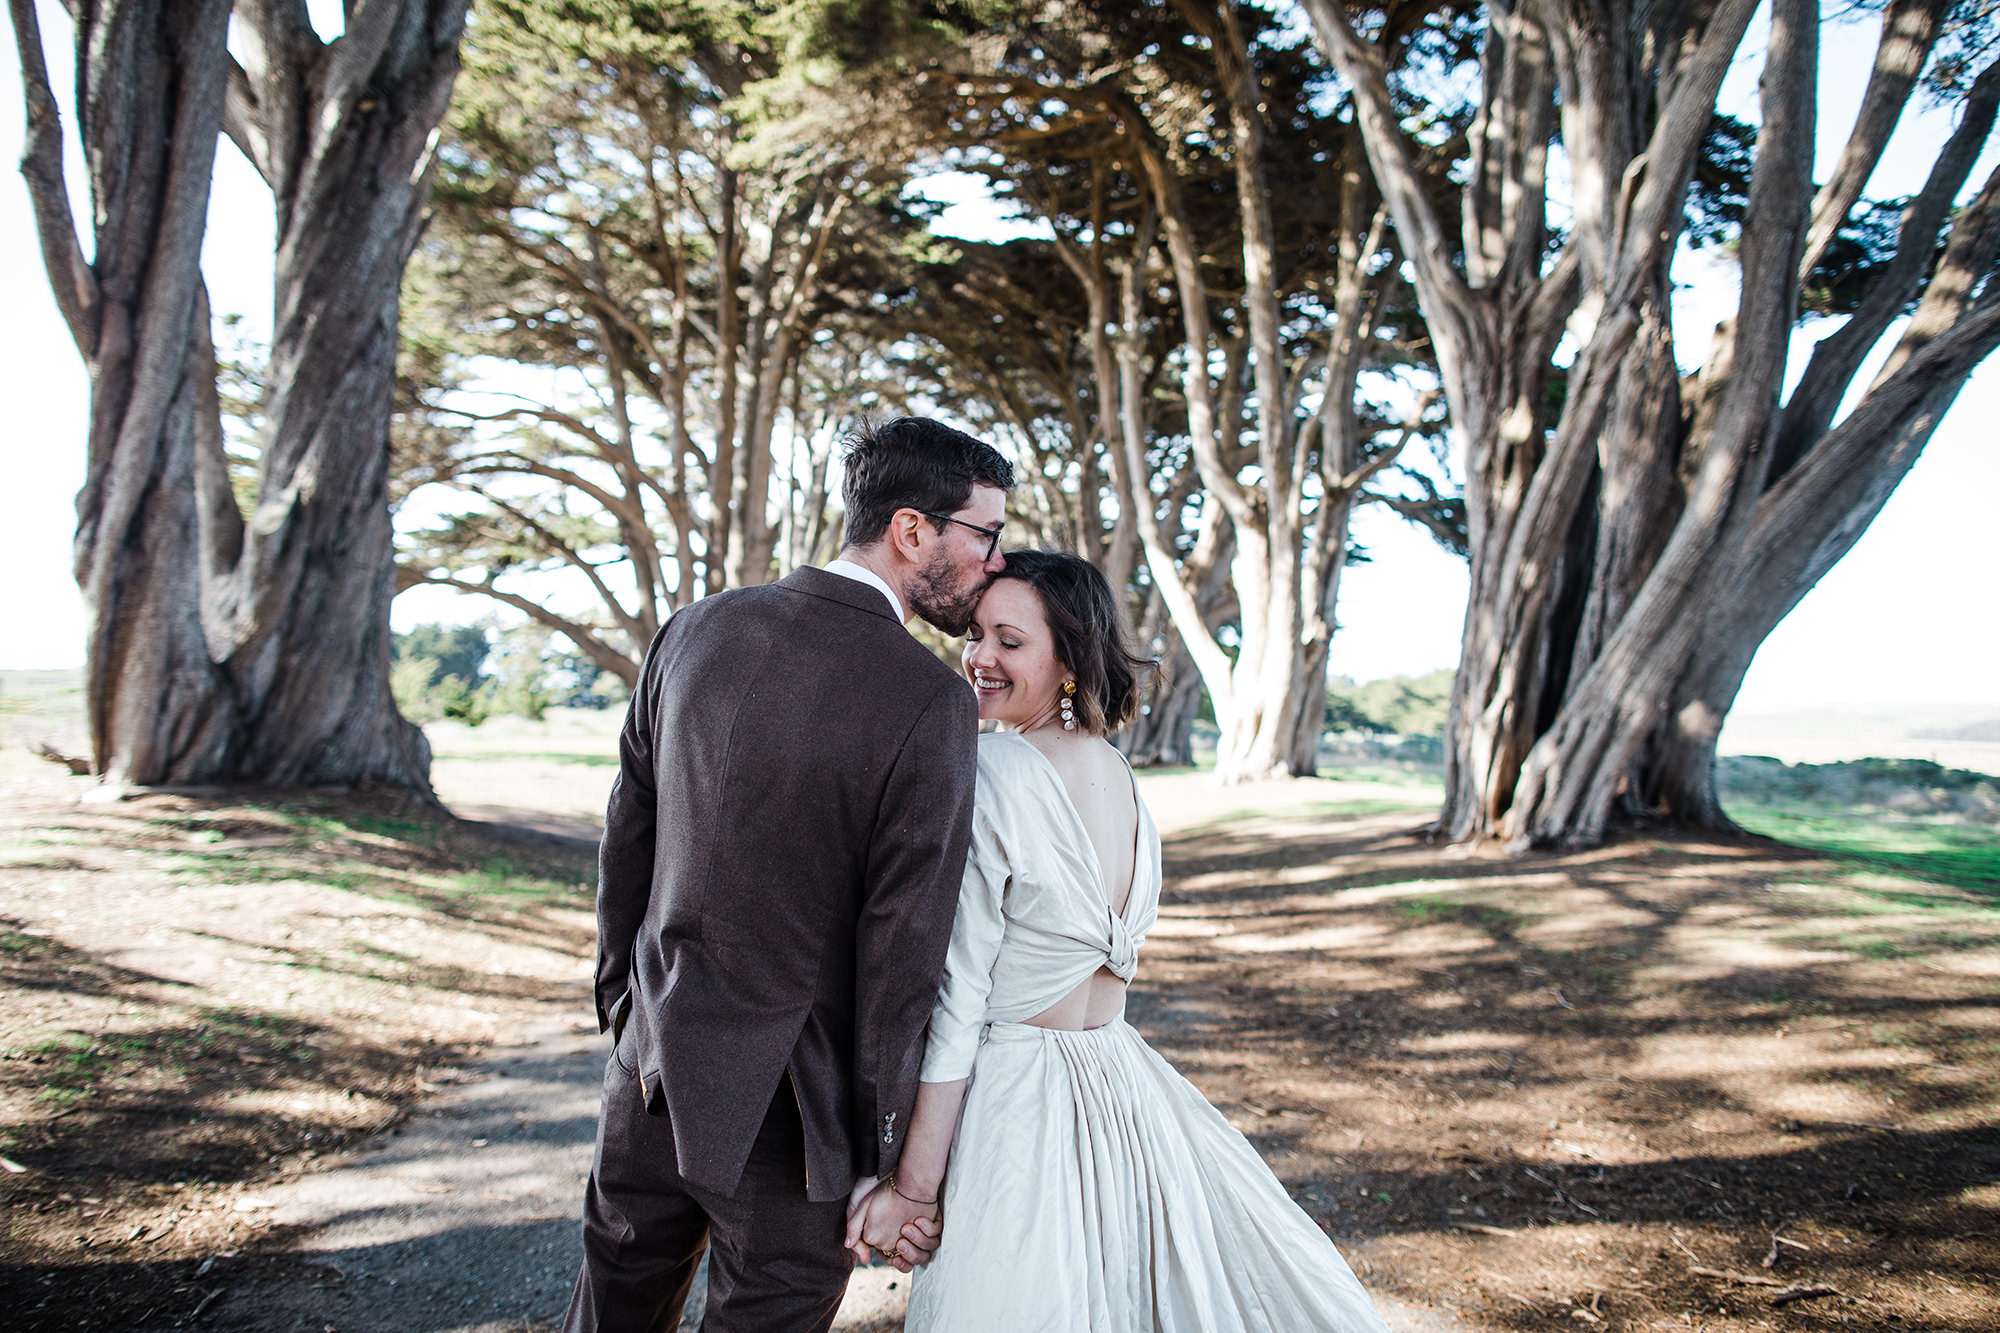 Groom sweetly kisses bride on forehead in the Cypress Tree Tunnel for Point Reyes Elopement.